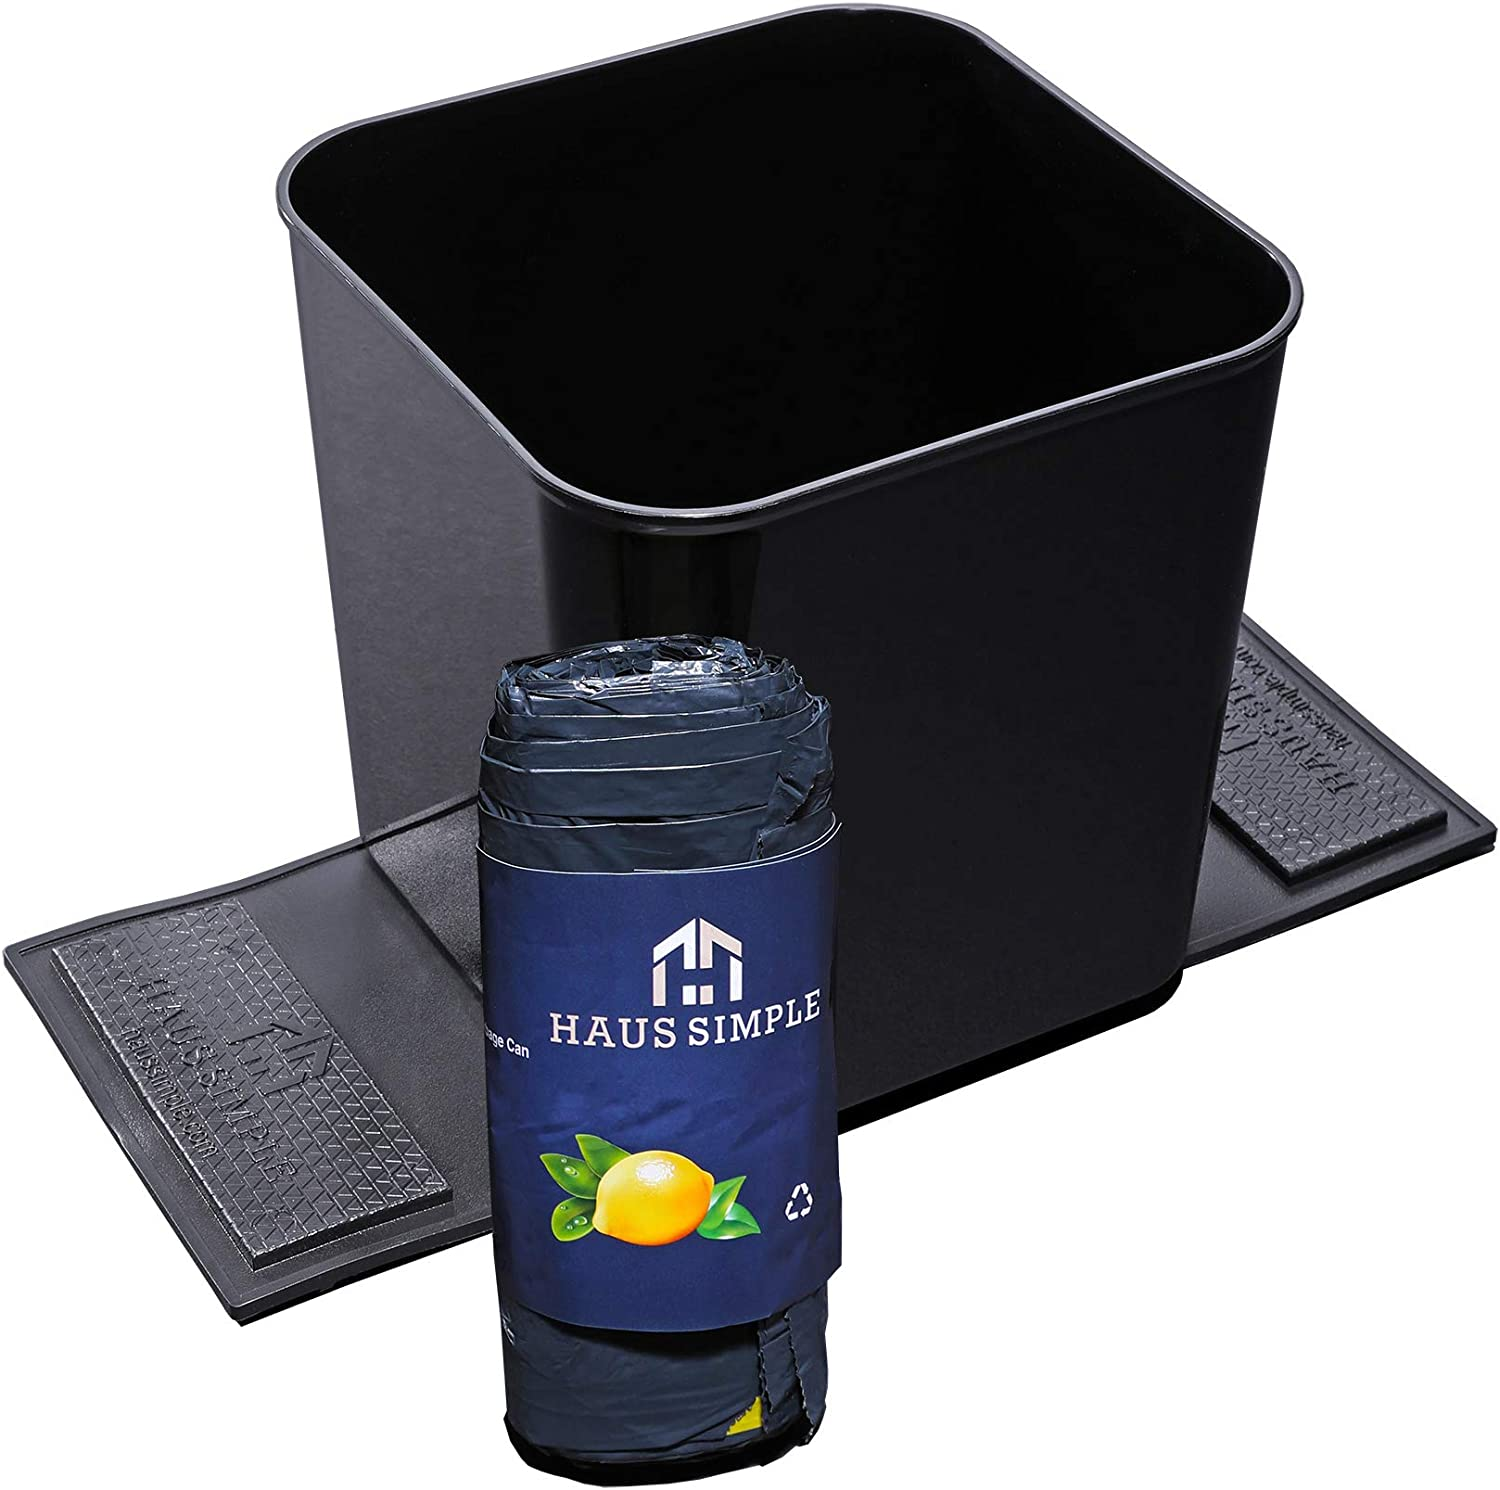 HAUSSIMPLE Car Trash Can Don't miss the campaign Garbage A Large discharge sale Plastic Storage Organizer Bin